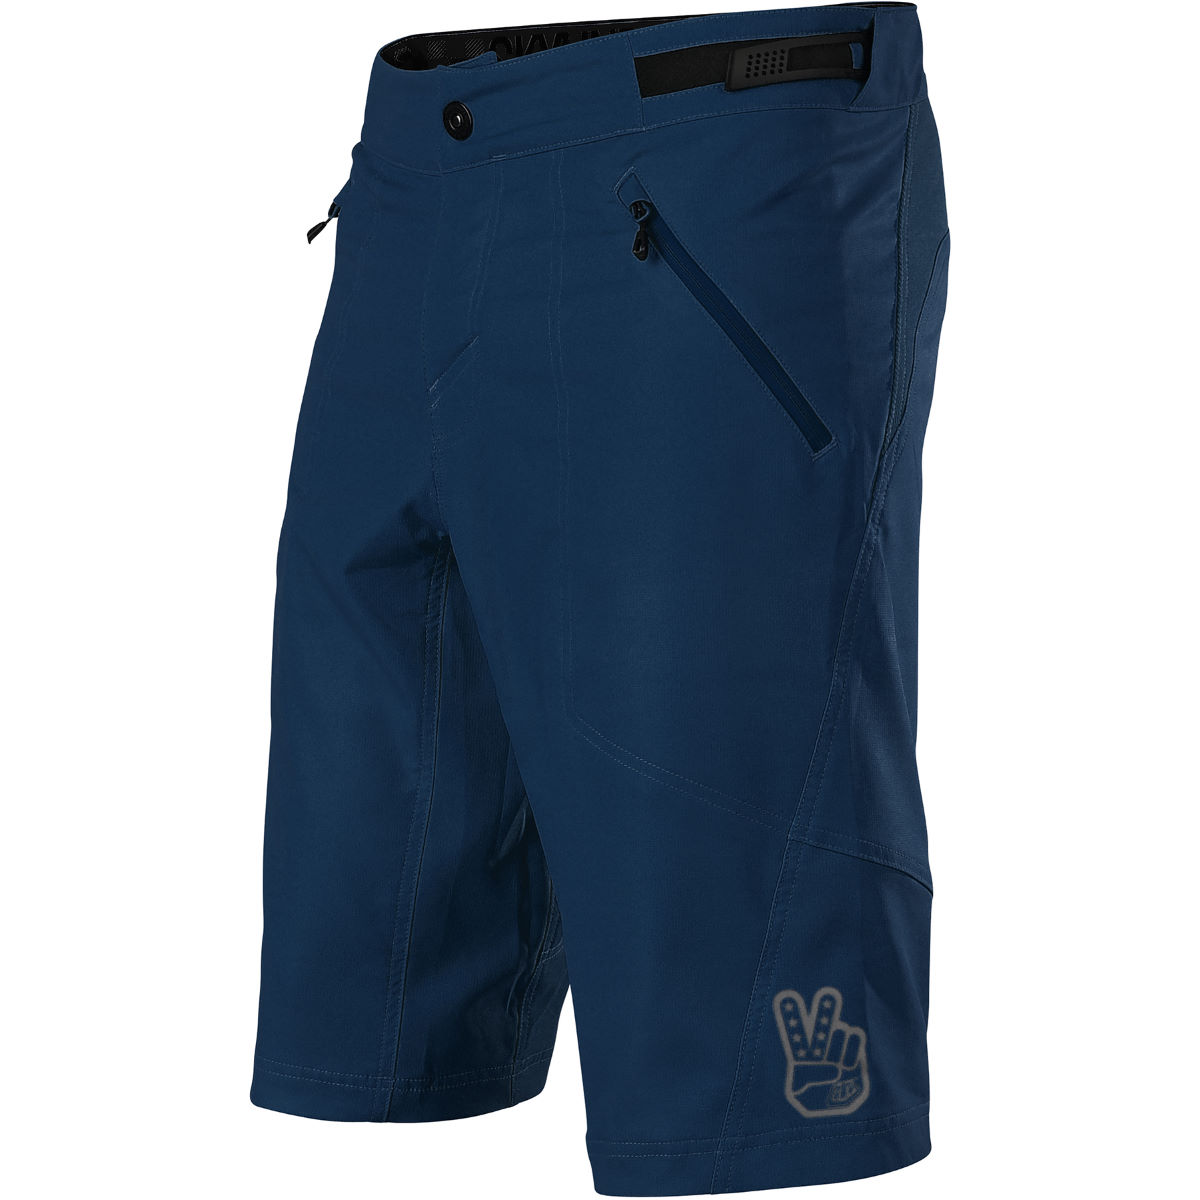 ComprarTroy Lee Designs Youth Skyline Shorts Shell - Bermudas